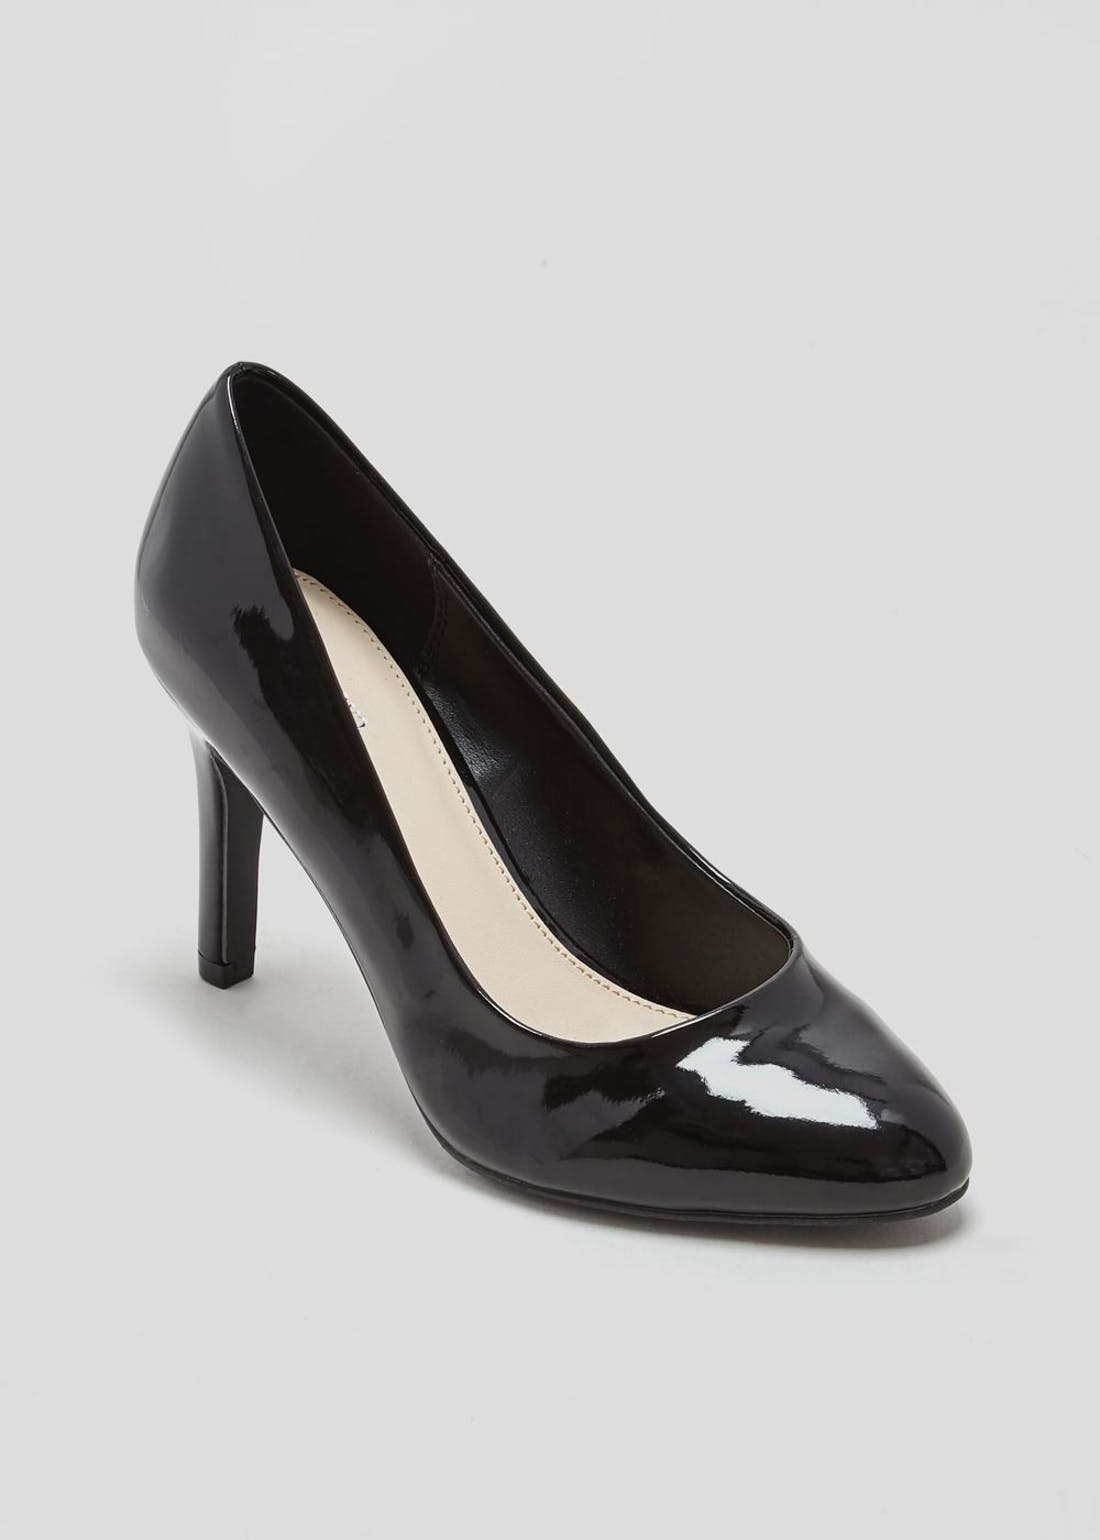 Black Patent Round Toe Court Shoes